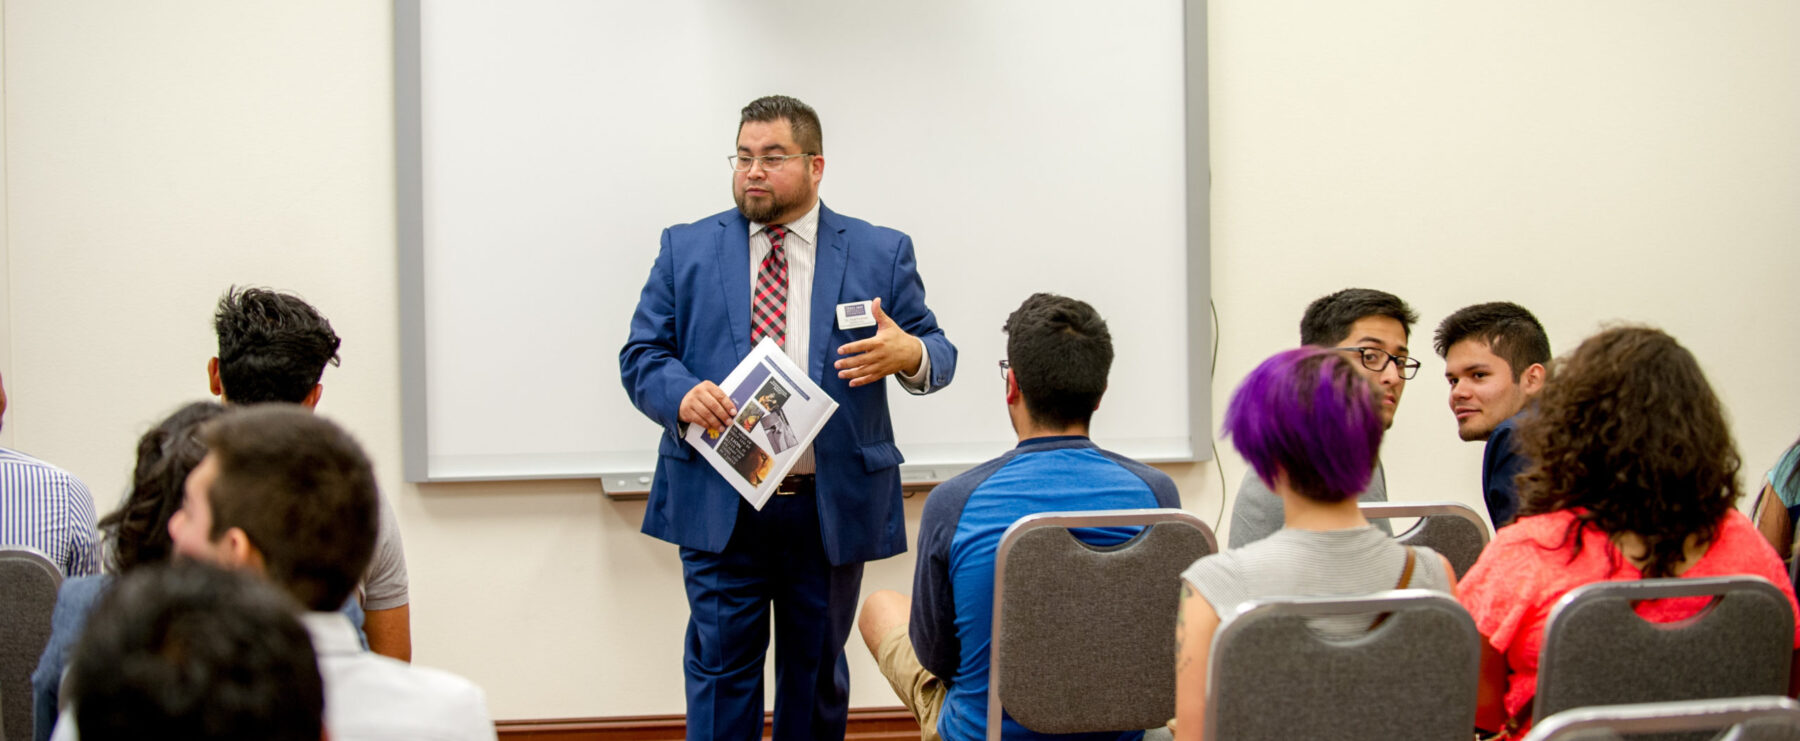 Dr. Fred Fuentes giving a presentation.